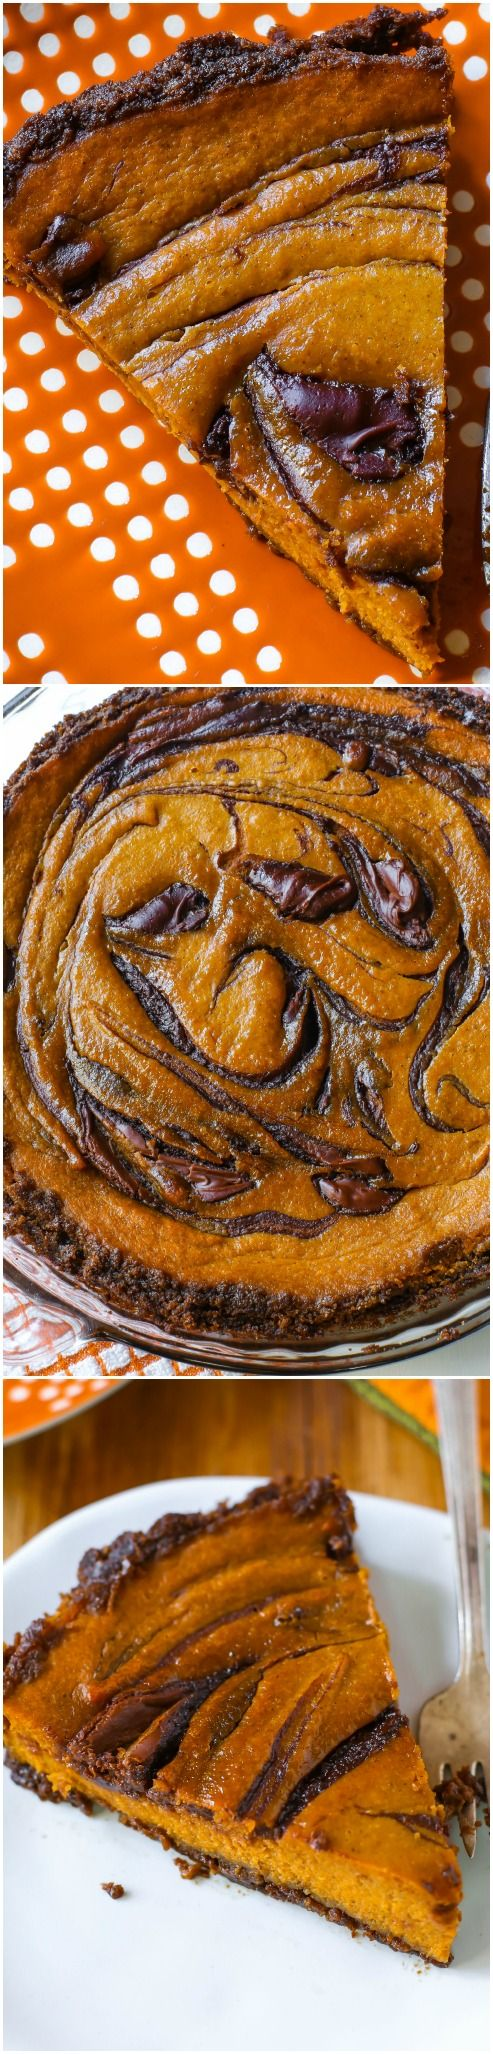 A twist on traditional pumpkin pie - swirled with decadent Nutella and baked in…